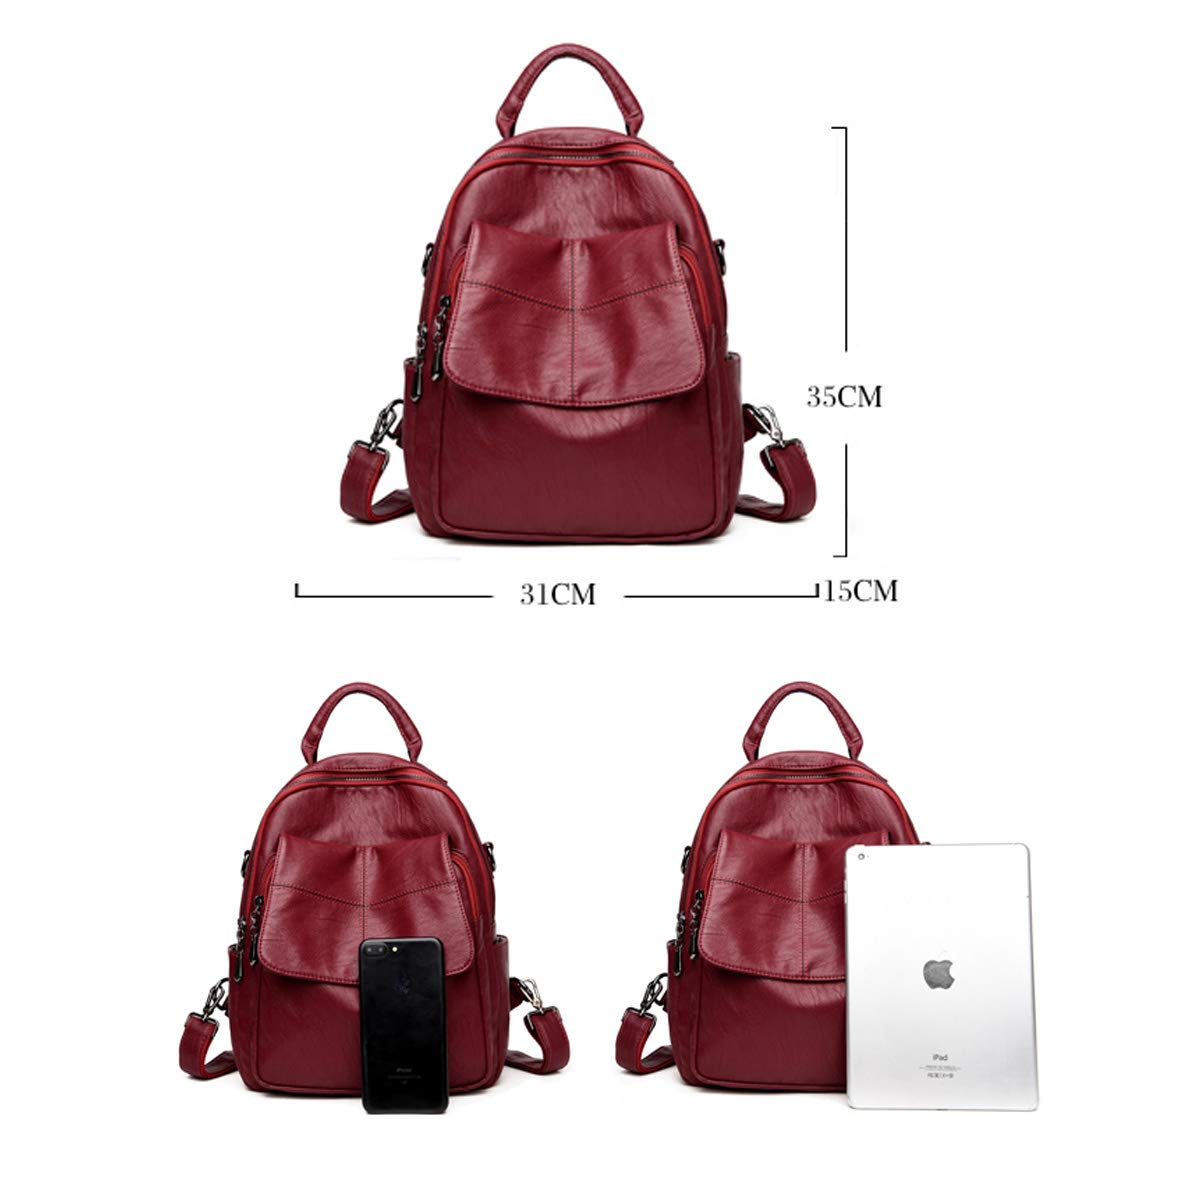 Generous and Simple. PU Leather Five Colors Color : Red, Size : 31cm35cm15cm Haoyushangmao Girls Multi-Purpose Backpack for Daily Travel//Outdoor//Travel//School//Work//Fashion//Leisure